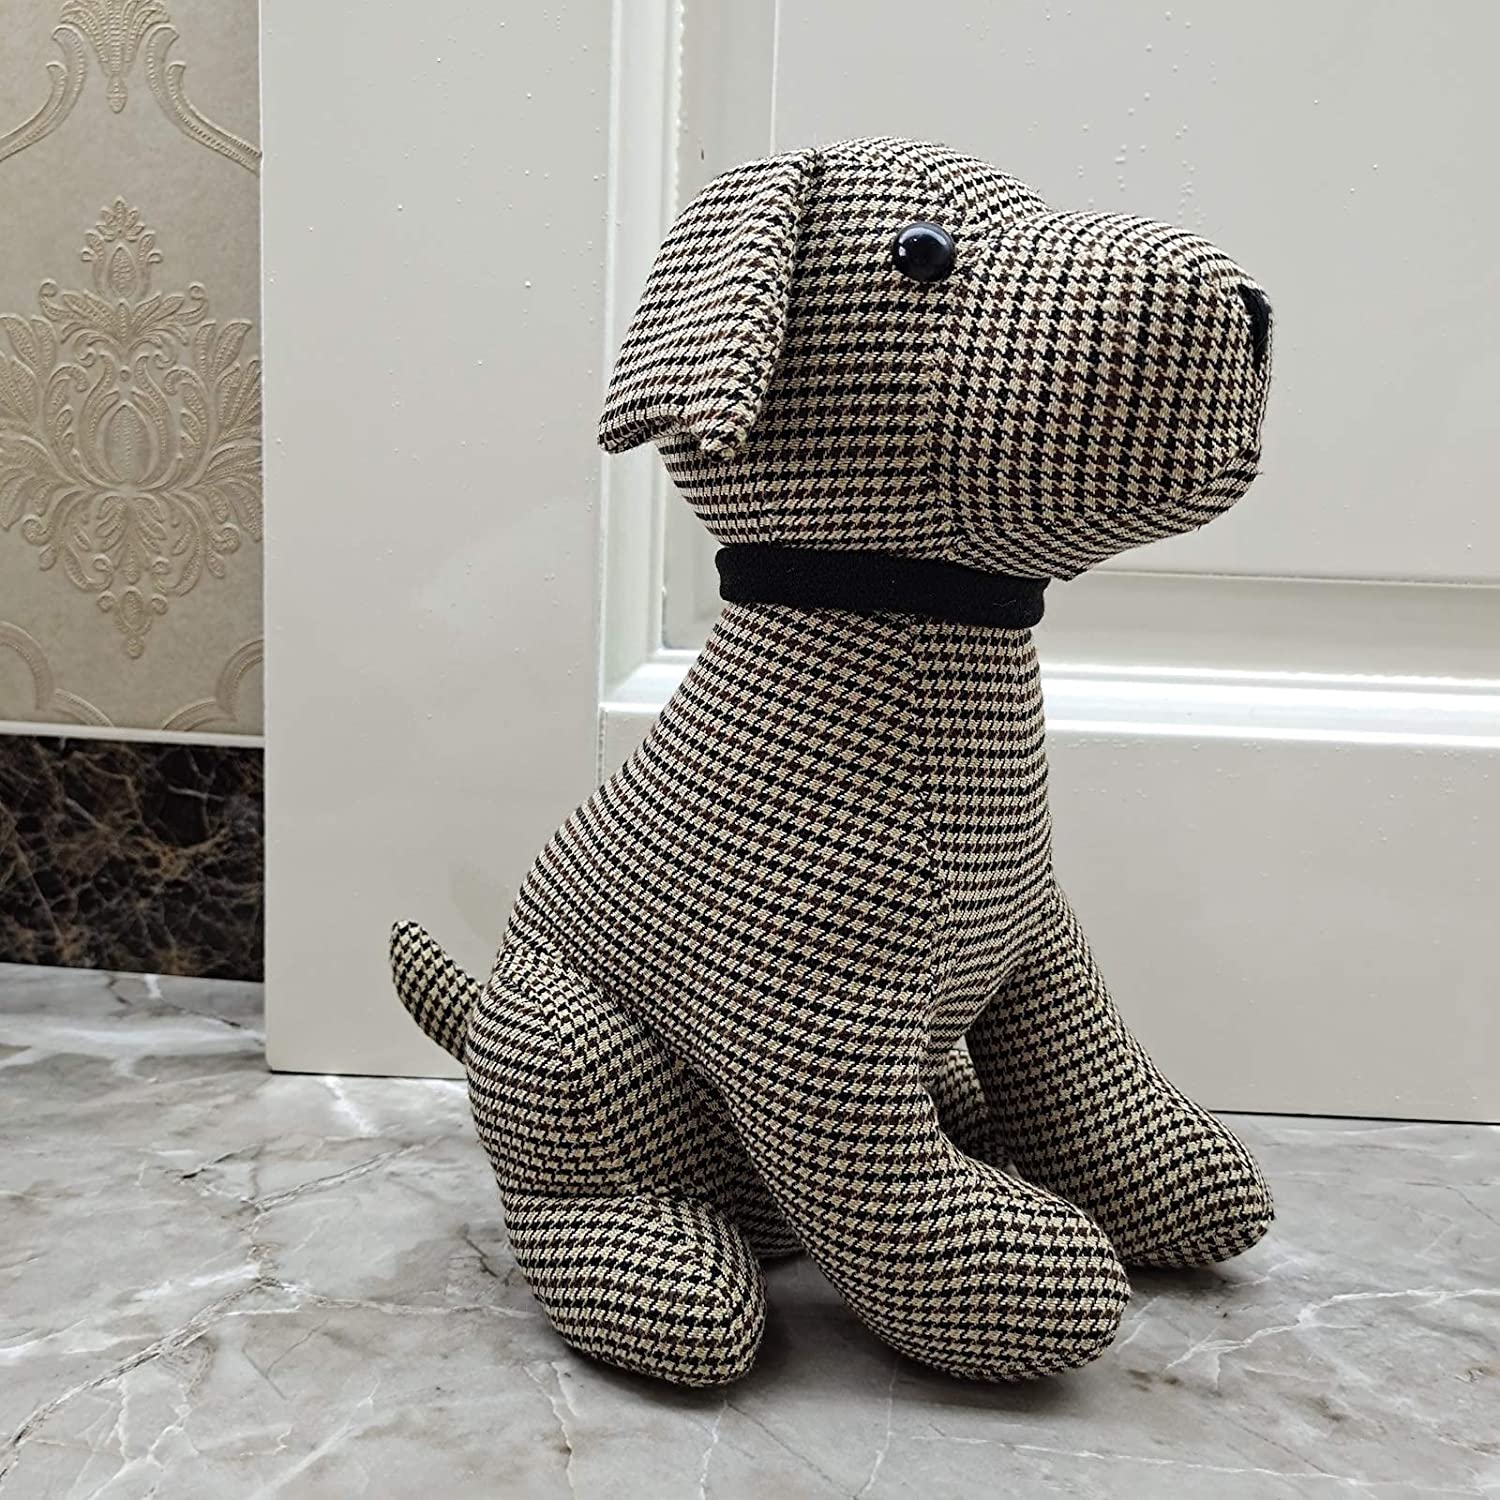 Animal Interior Door Stopper Doorstops Book 70% OFF Outlet Protect 2021 new Wall